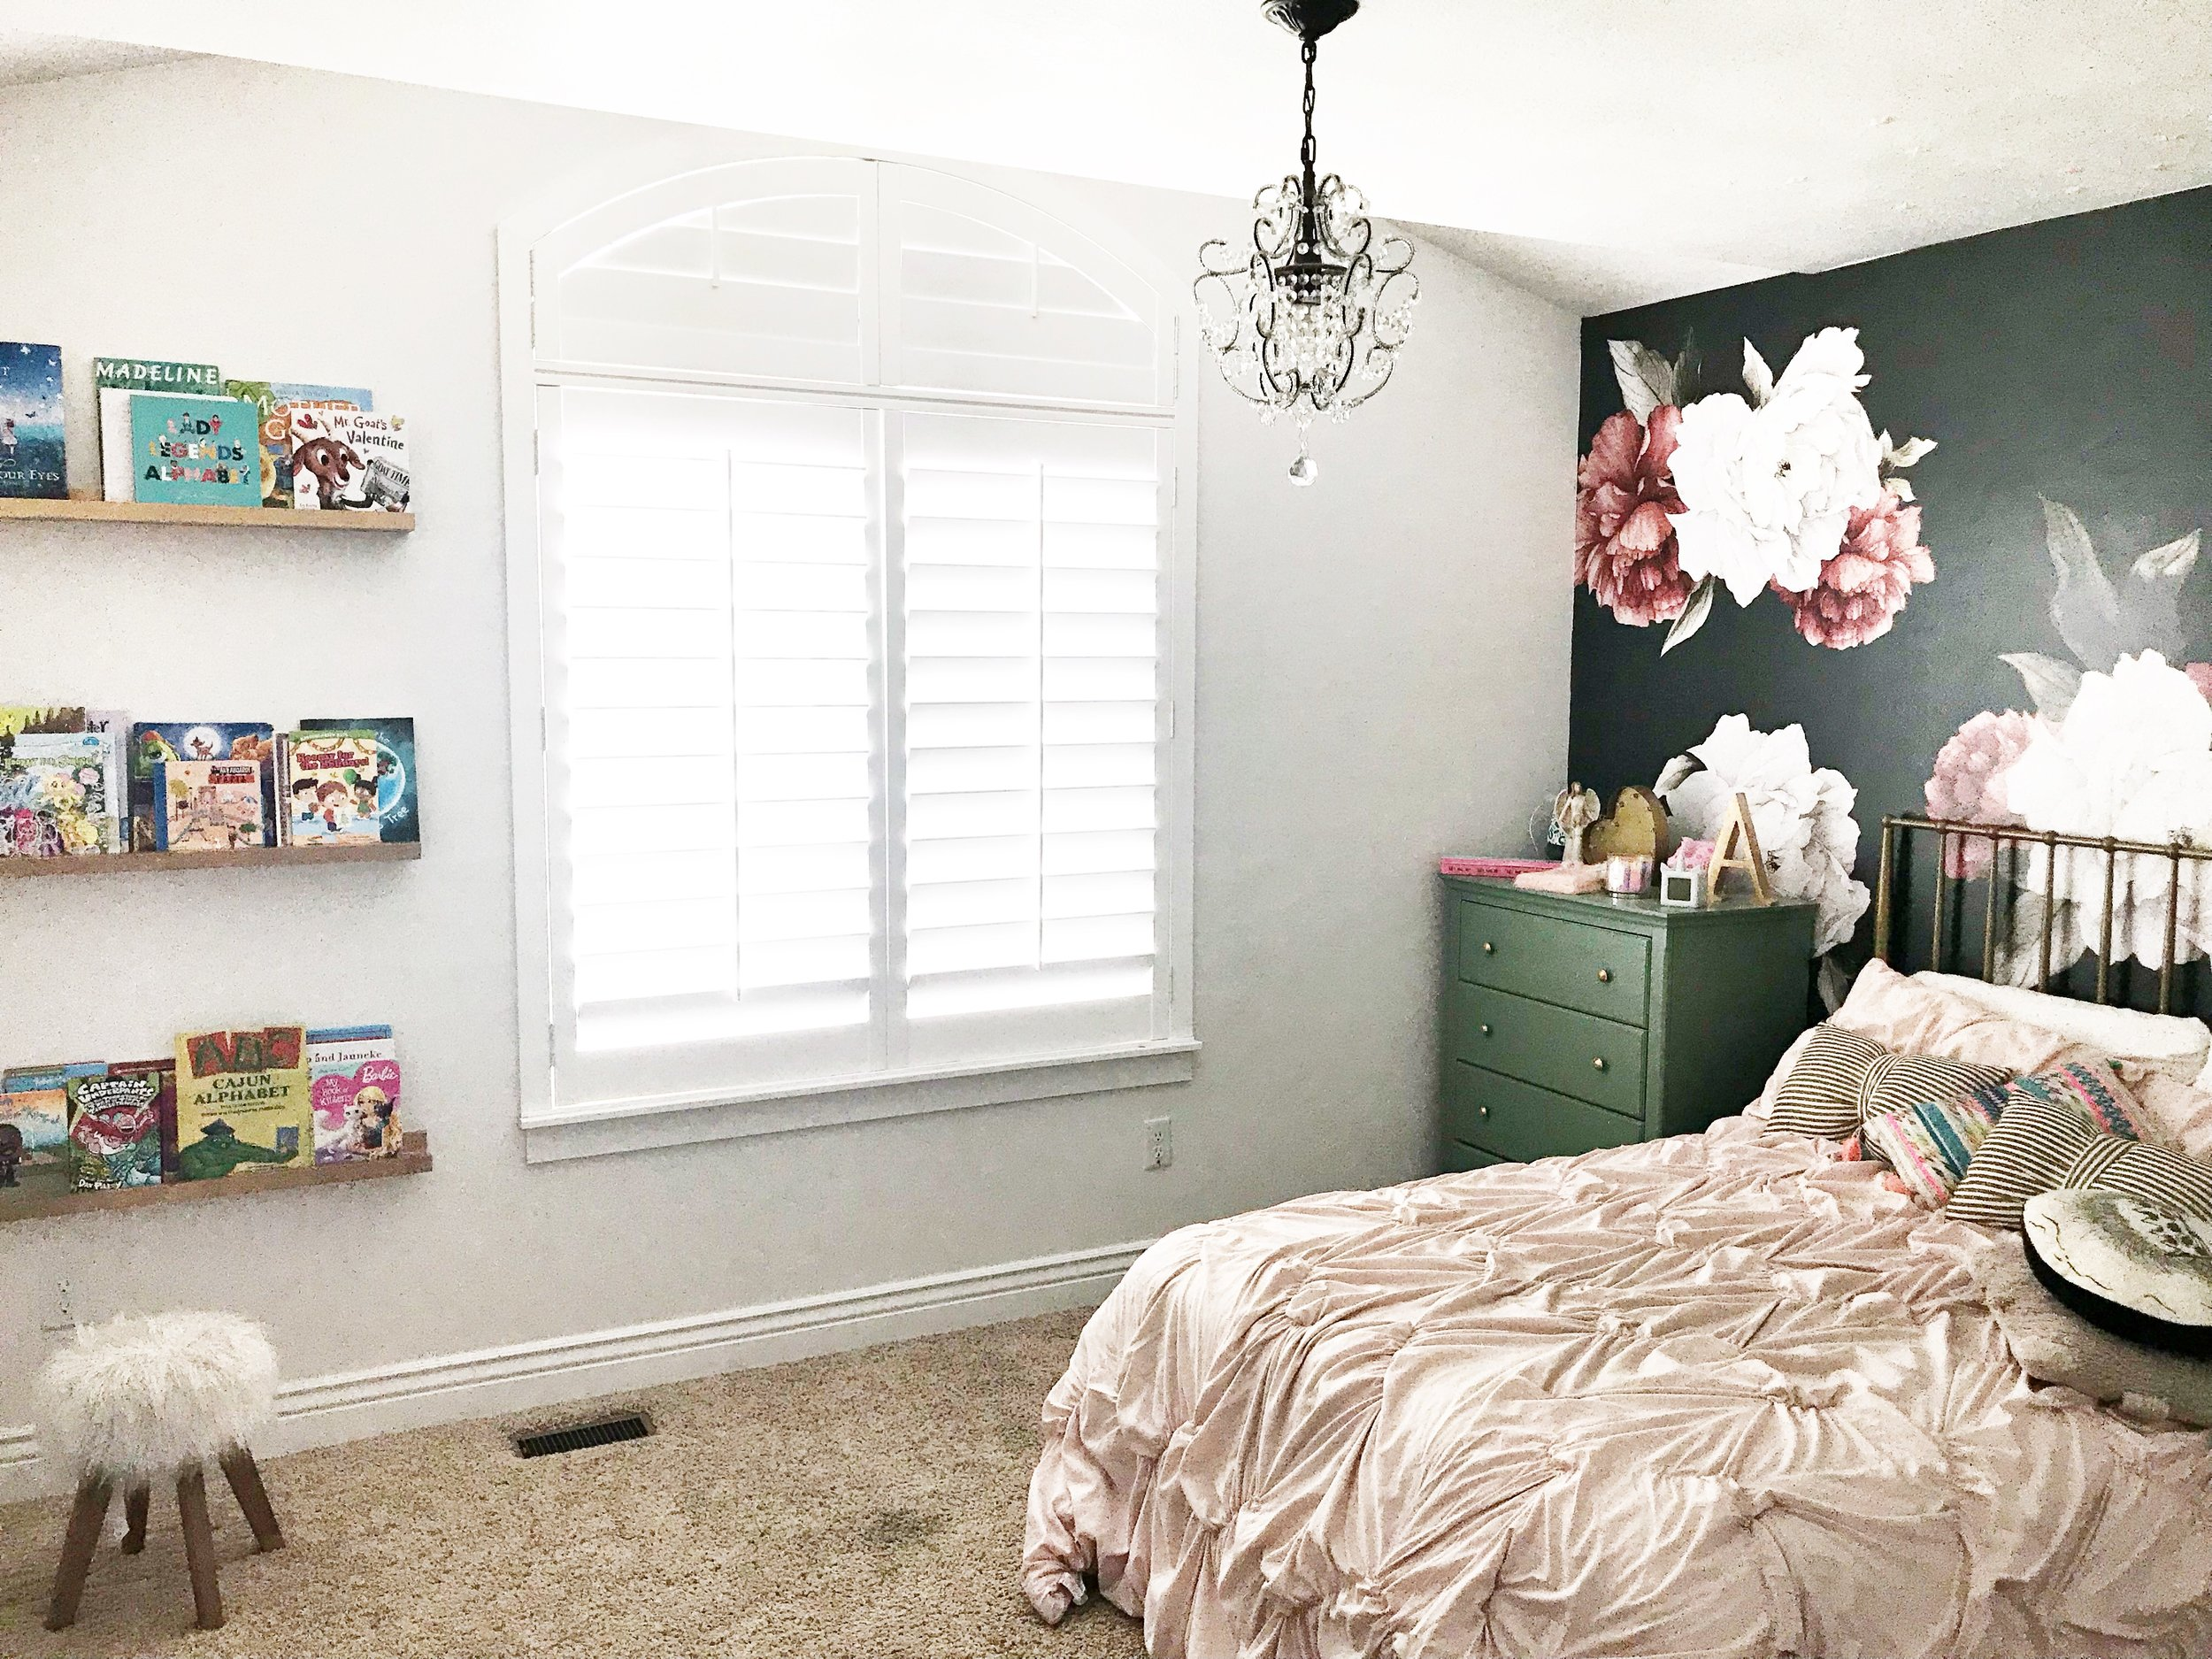 my daughters bedroom remodel little girls bedroom ideas the little milk bar blog for new and breastfeeding moms 4.JPG